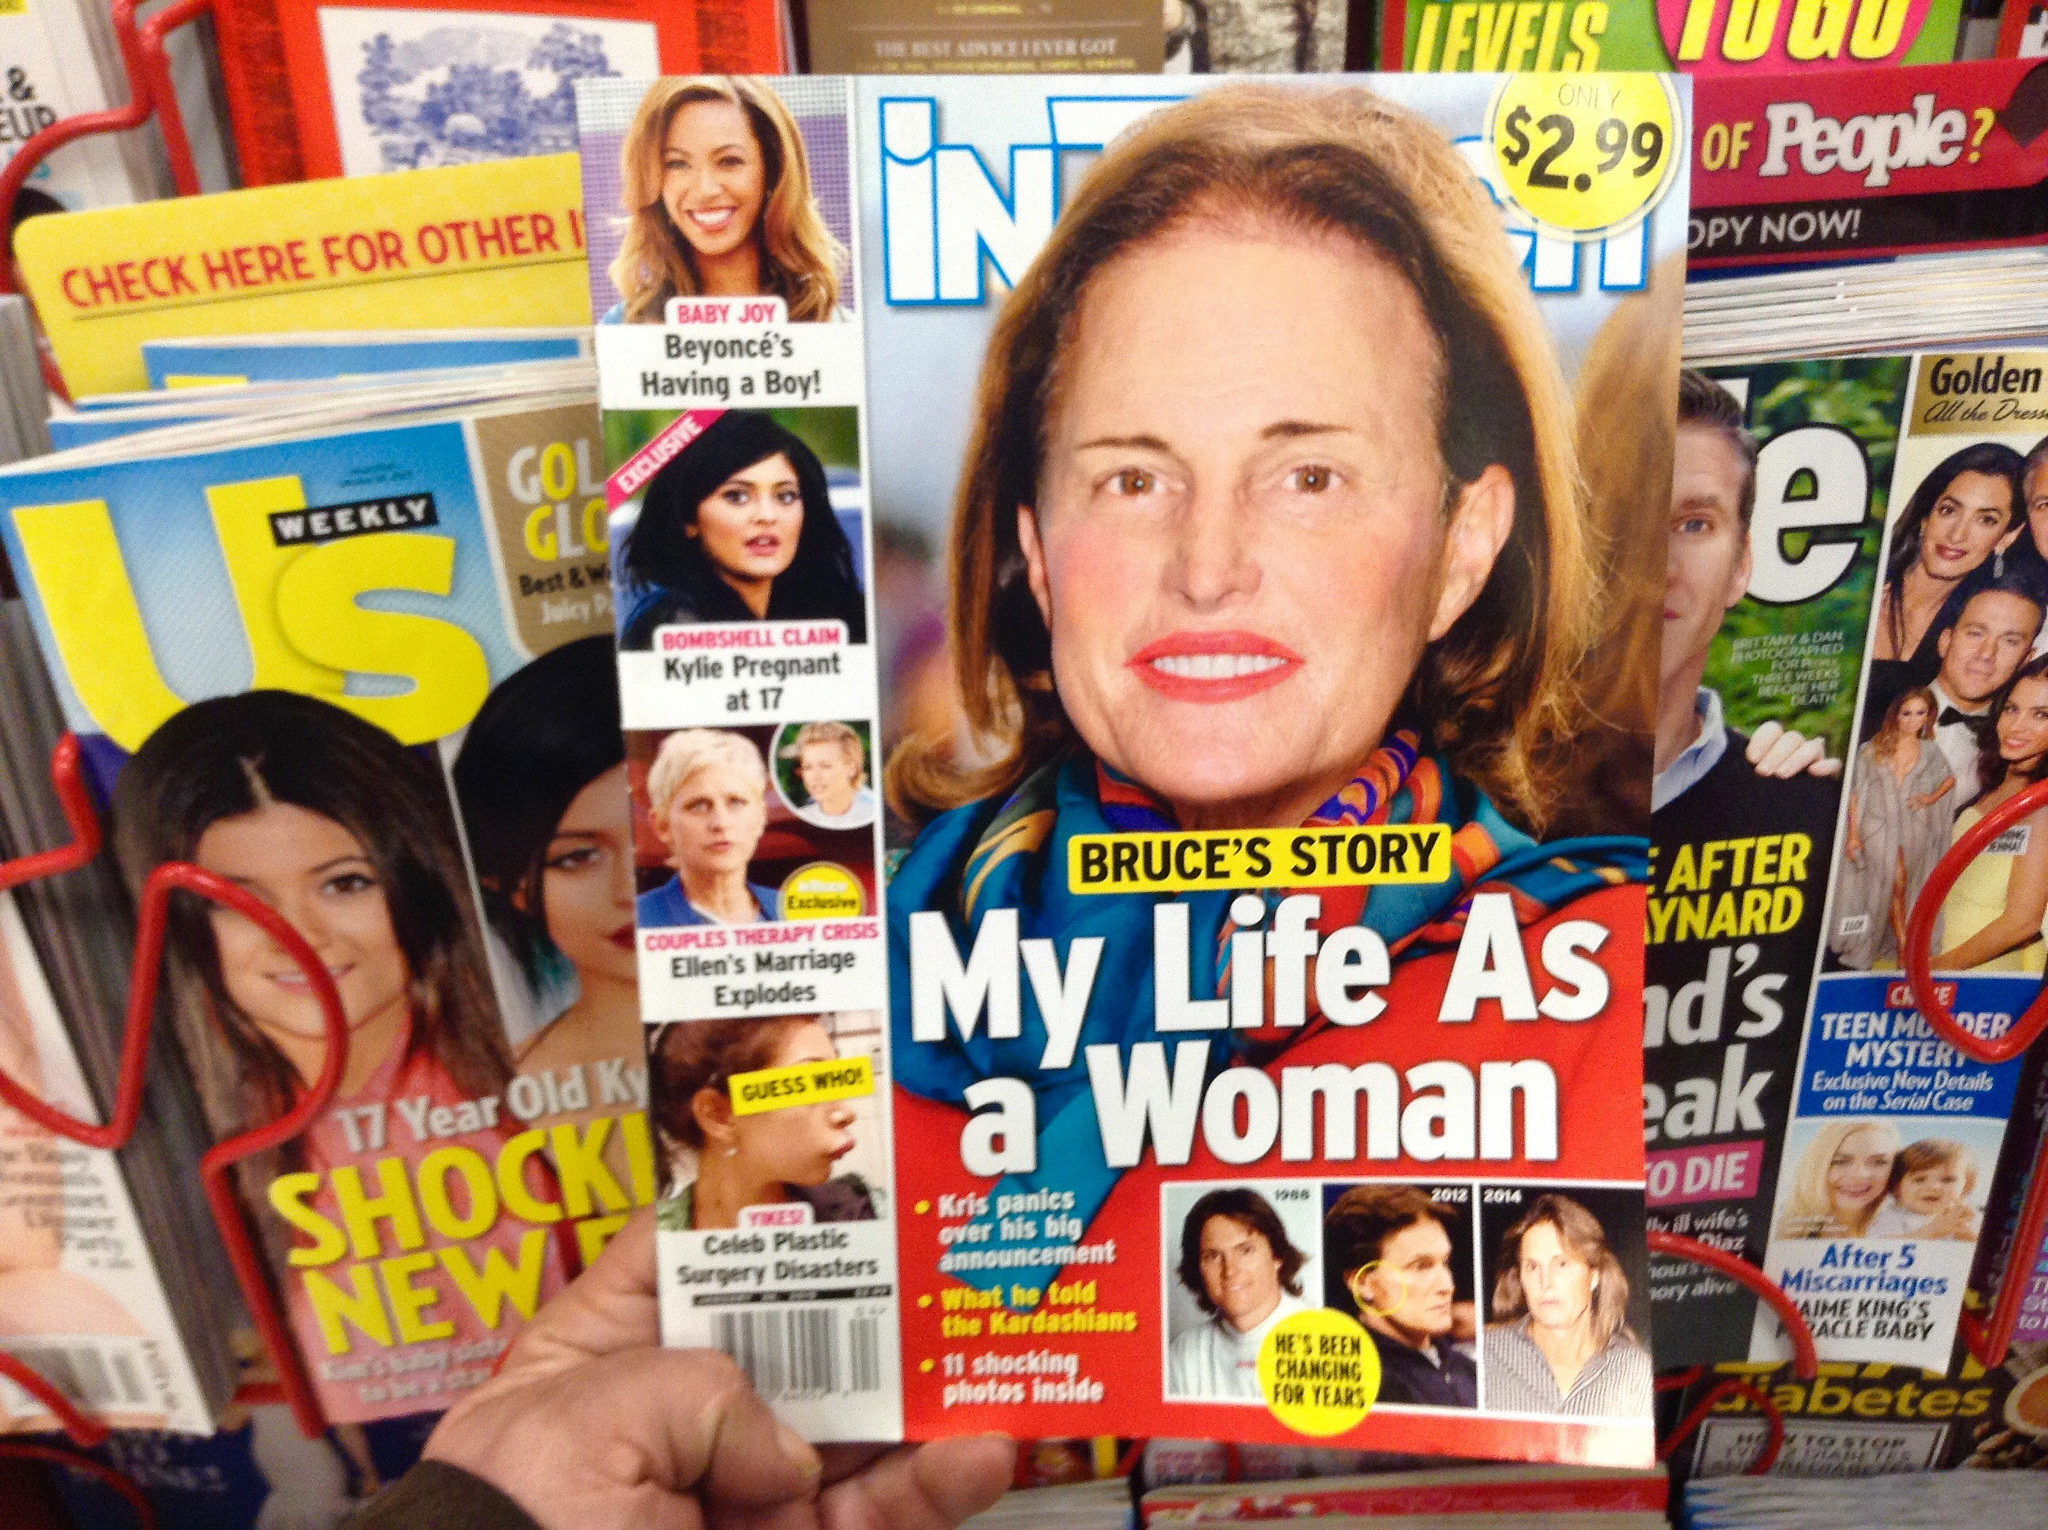 In Touch magazine's Photoshopped cover of Bruce Jenner as a woman. (Courtesy Mike Mozart / Flickr)